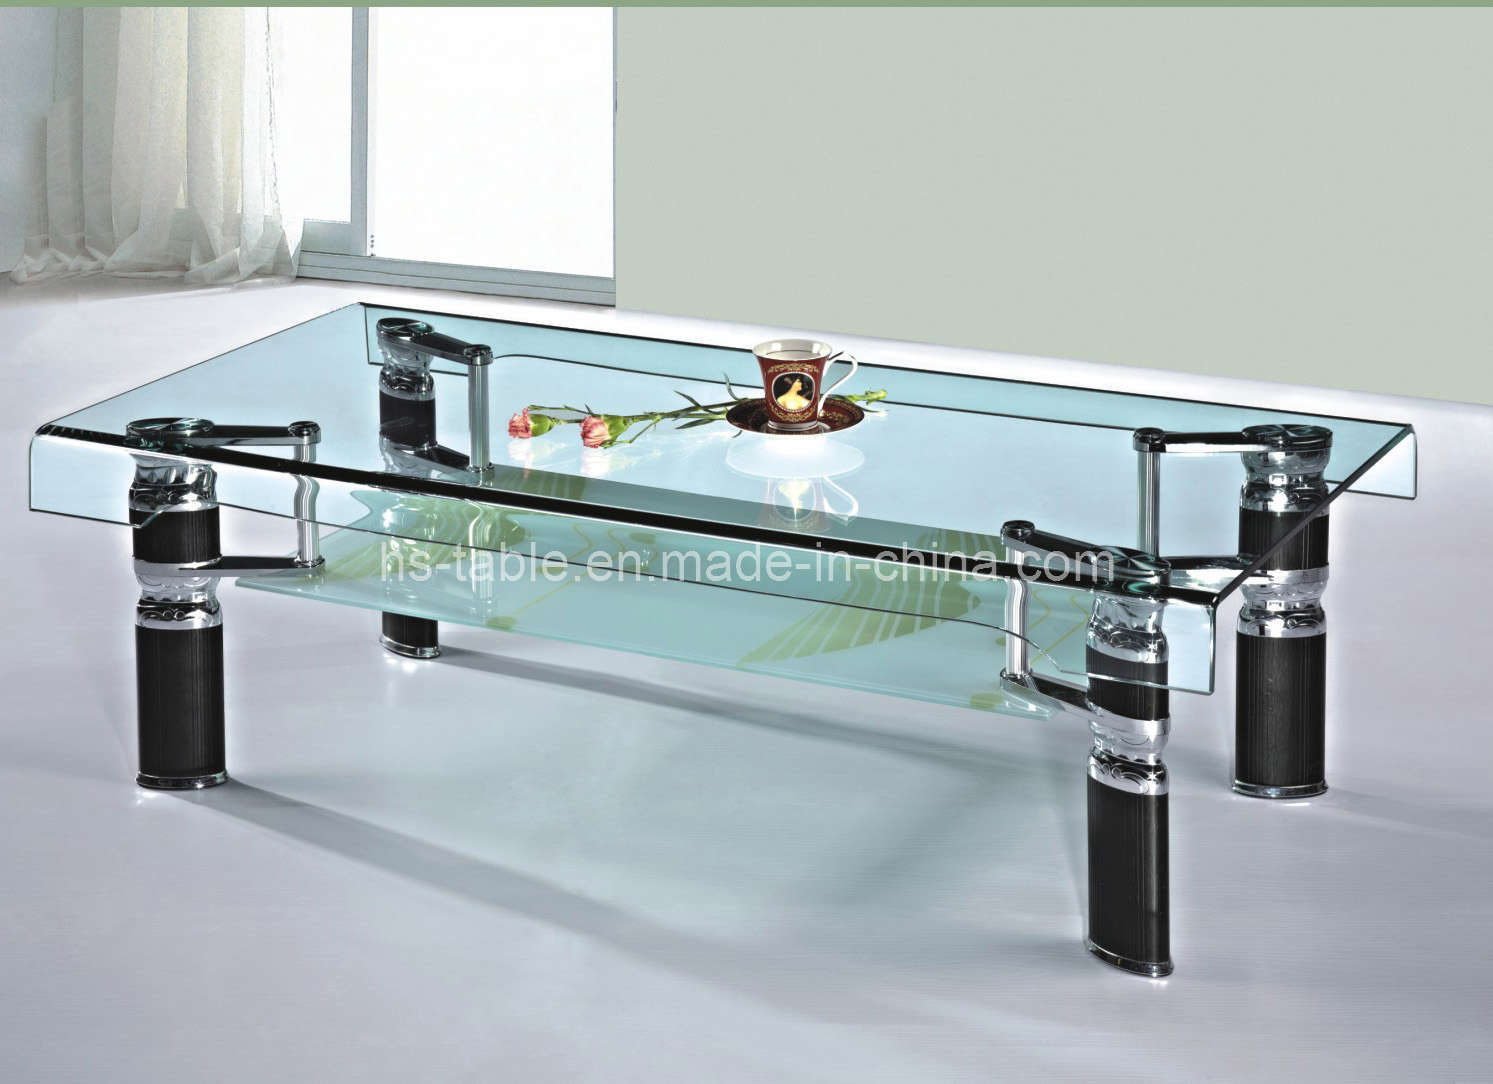 China bended glass coffee table living room furniture - Glass tables for living room ...